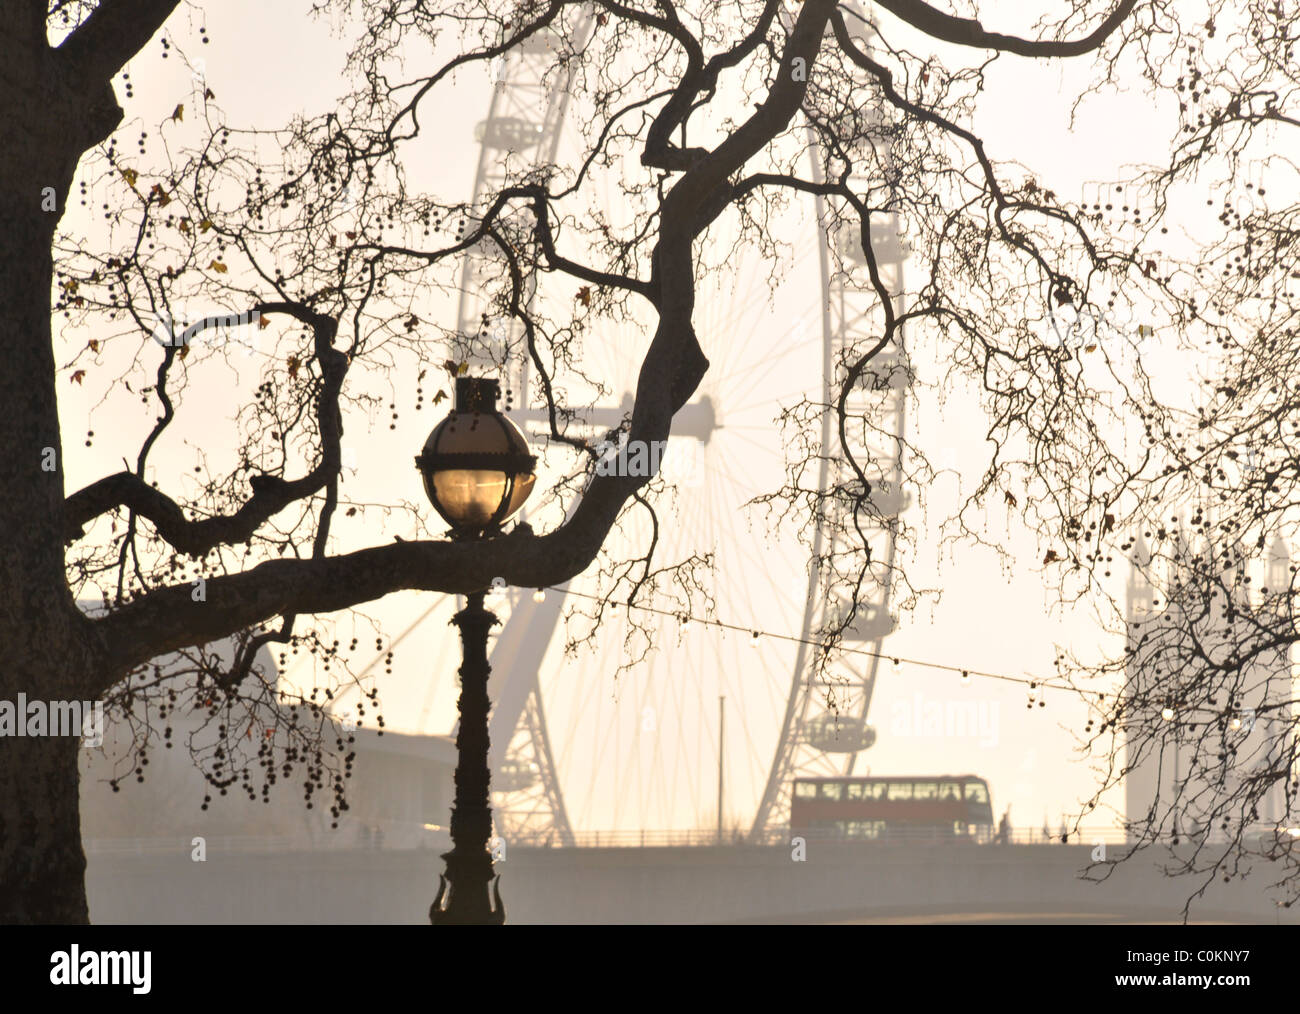 Silhouette Skyline Of The London Eye Westminster And Bus